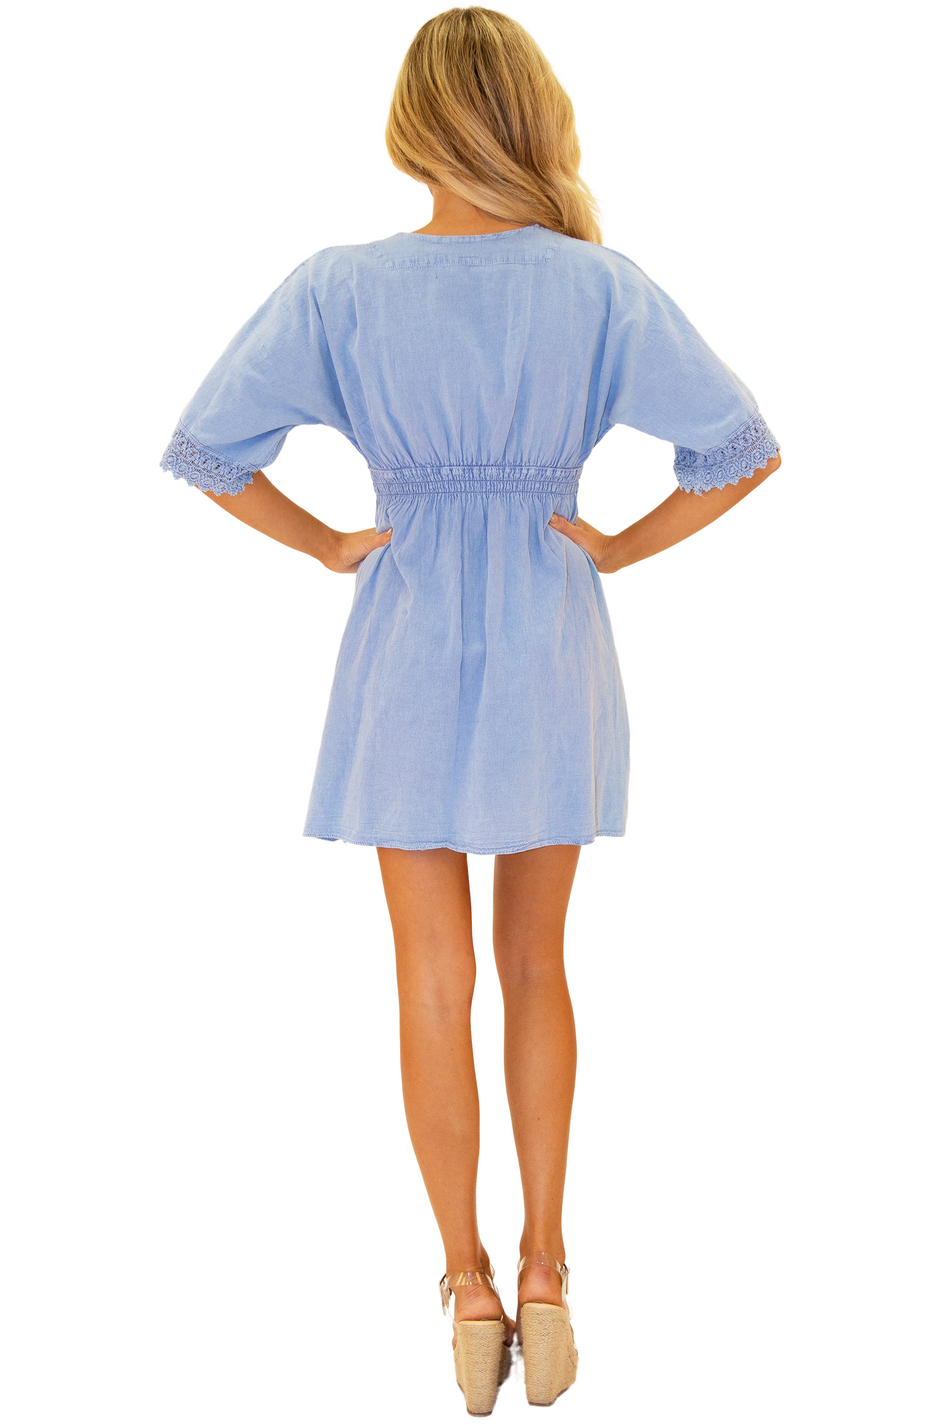 NW1148 - Blue Cotton Cover-Up